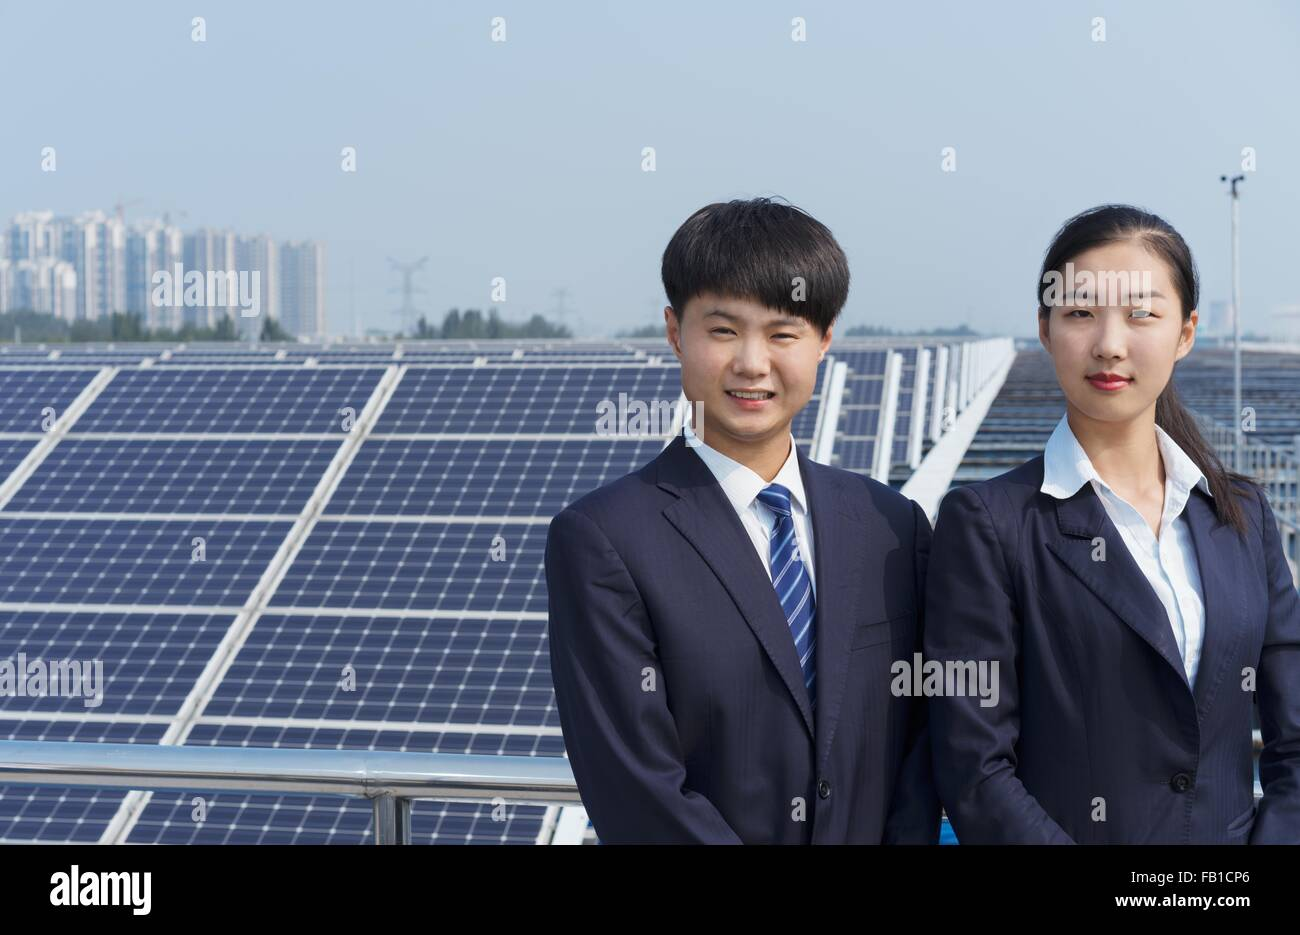 Businessman and businesswoman on roof of solar panel assembly factory, Solar Valley, Dezhou, China - Stock Image